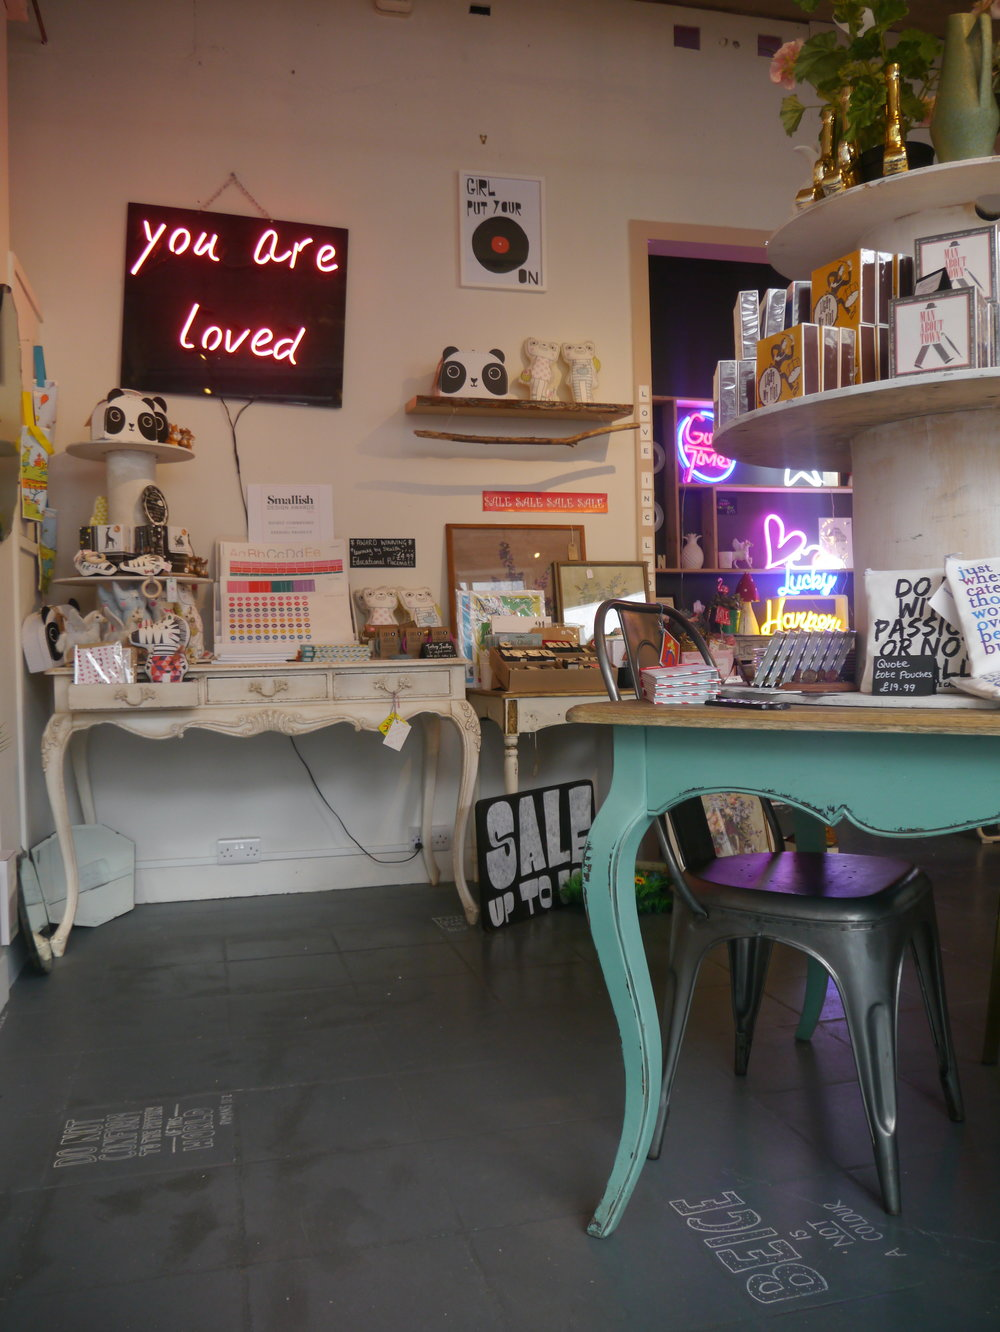 Design On My Doorstep - Love Inc You Are Loved LED Neon Light for the Home – By Smartstyle Interiors.JPG